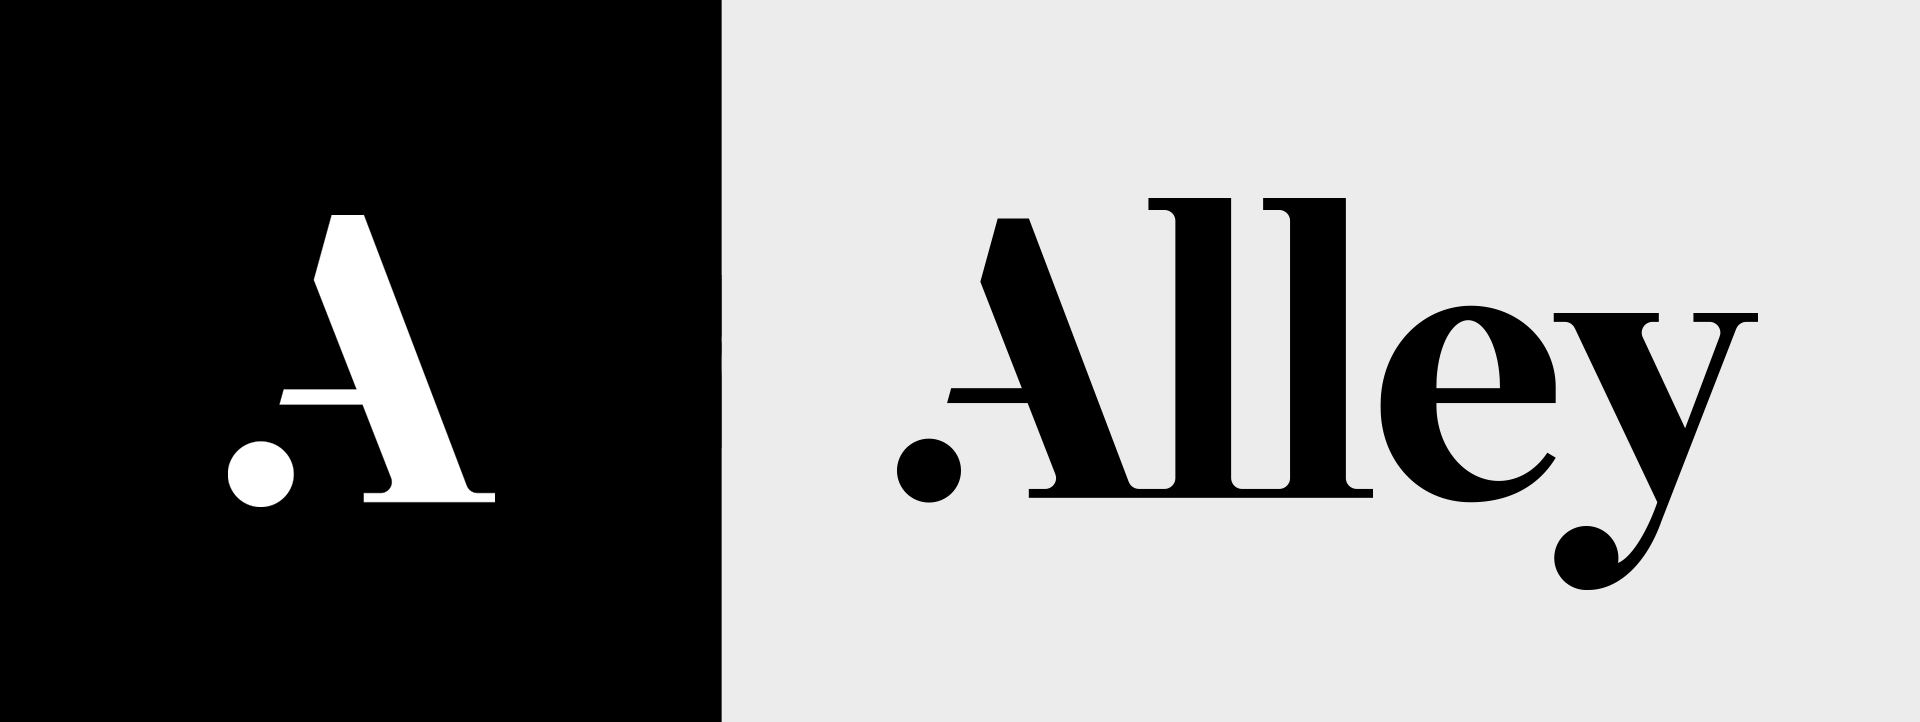 The Alley A logomark in white on black, next to the new Alley logotype of the word Alley in black on grey